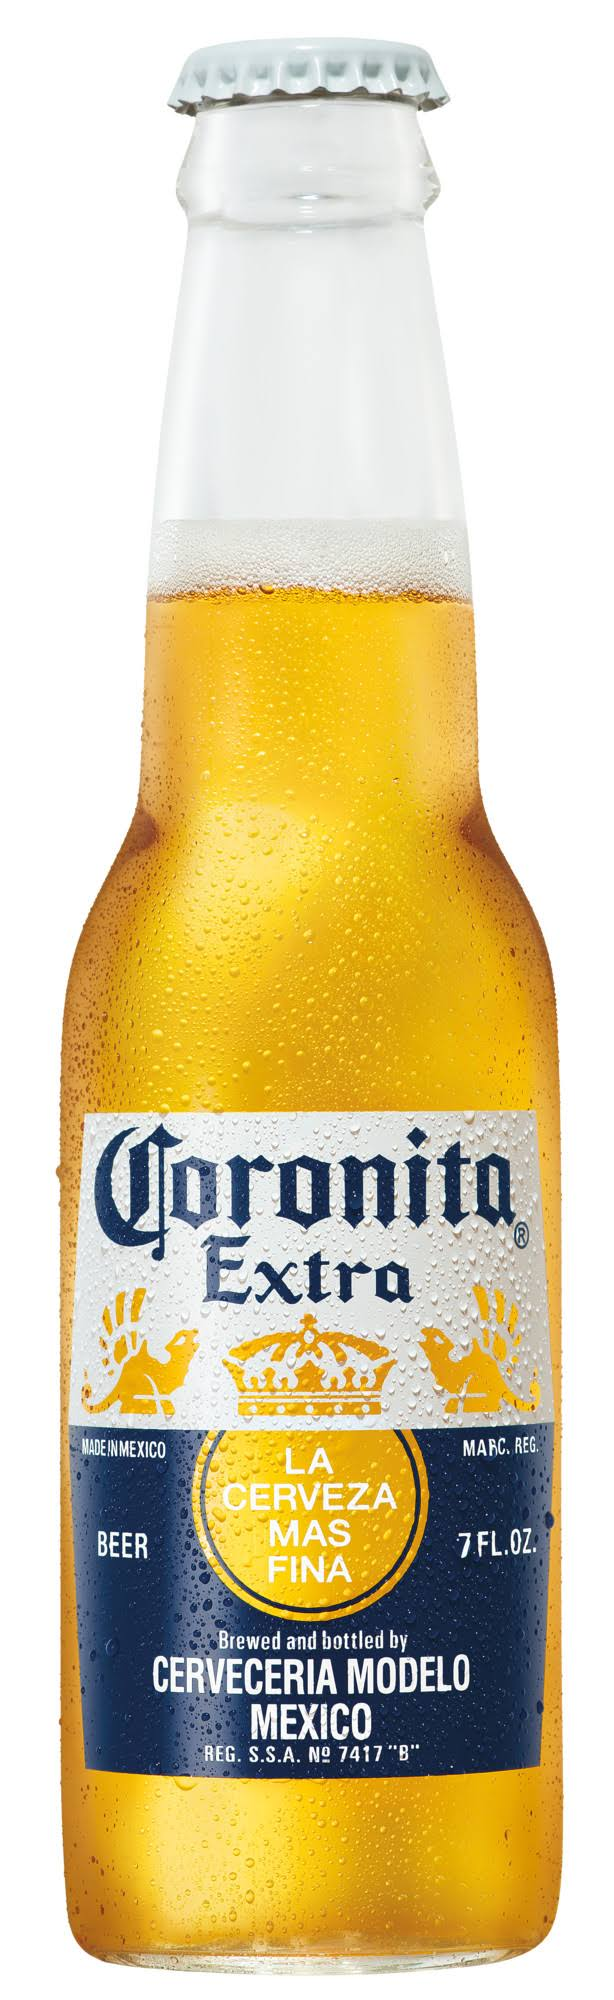 Coronita Extra Beer - 7 fl oz